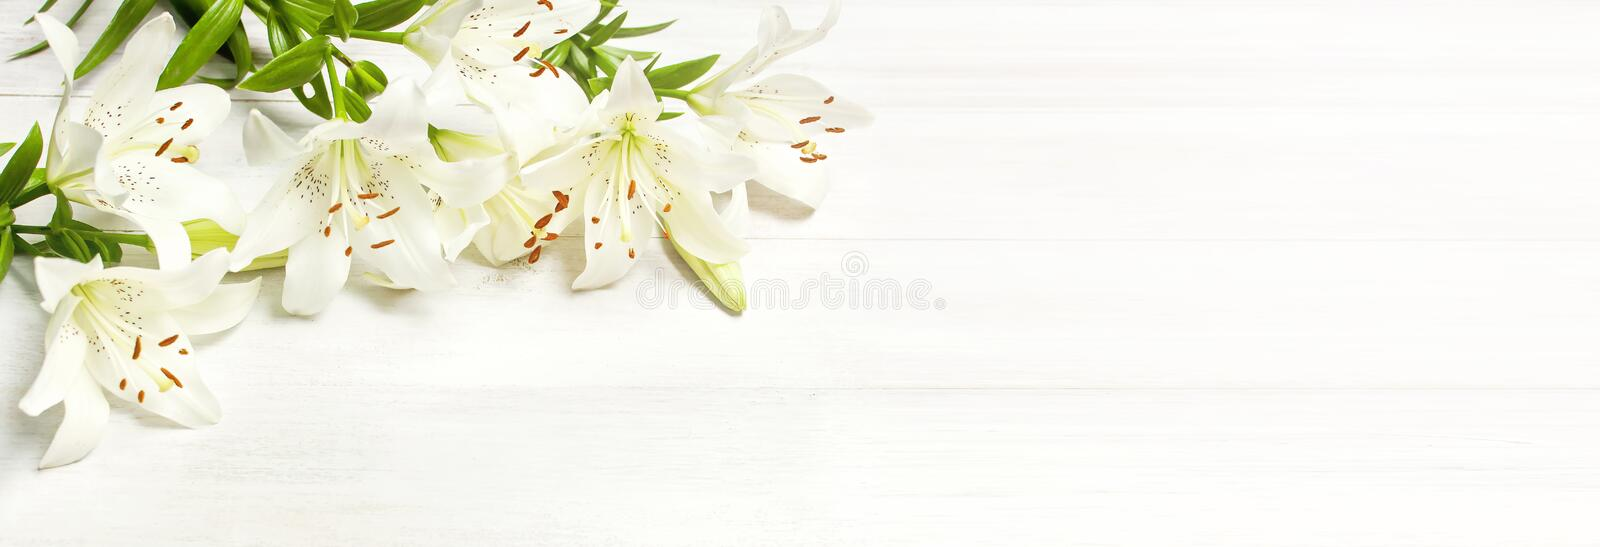 Frame of white lilies isolated on a white wooden background top view. Flowers lily beautiful bouquet white flowers royalty free stock image